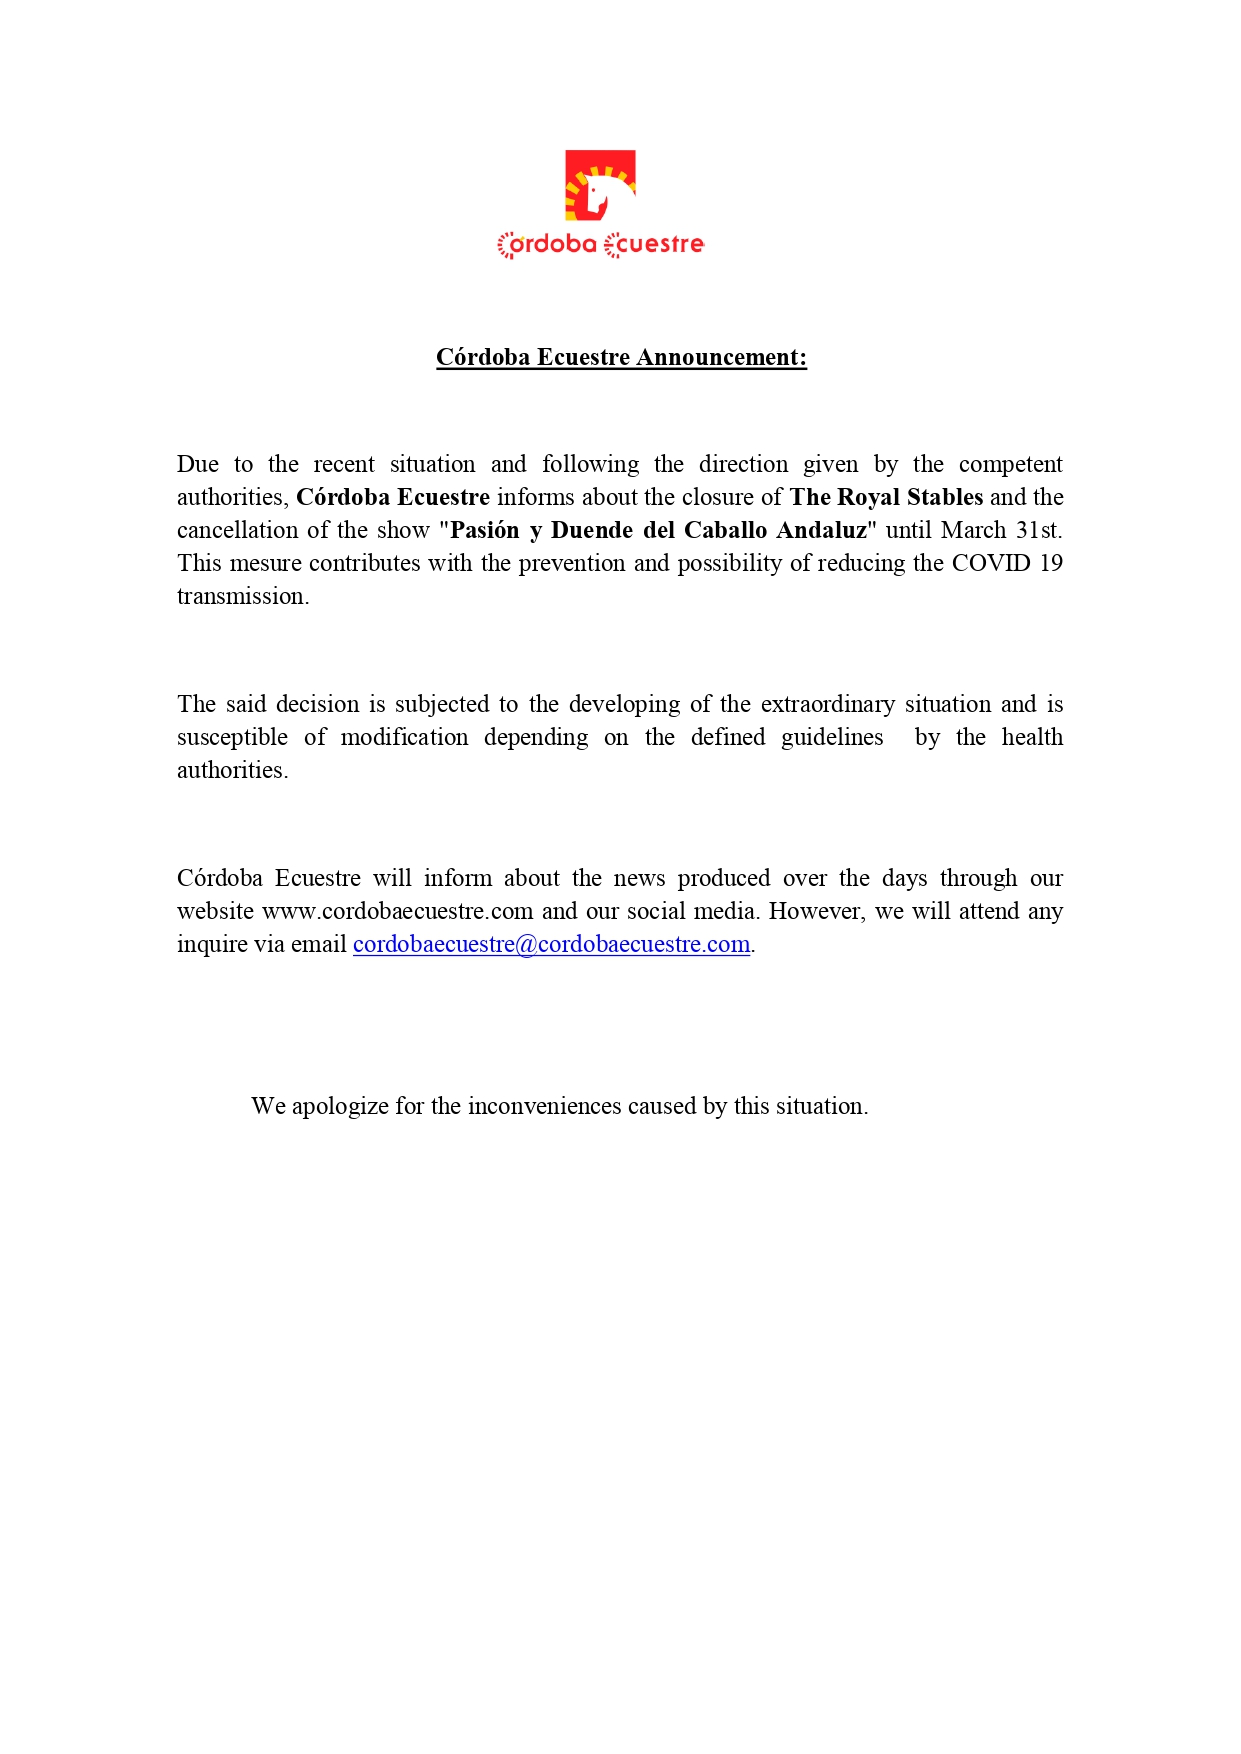 Córdoba ecuestre announcement